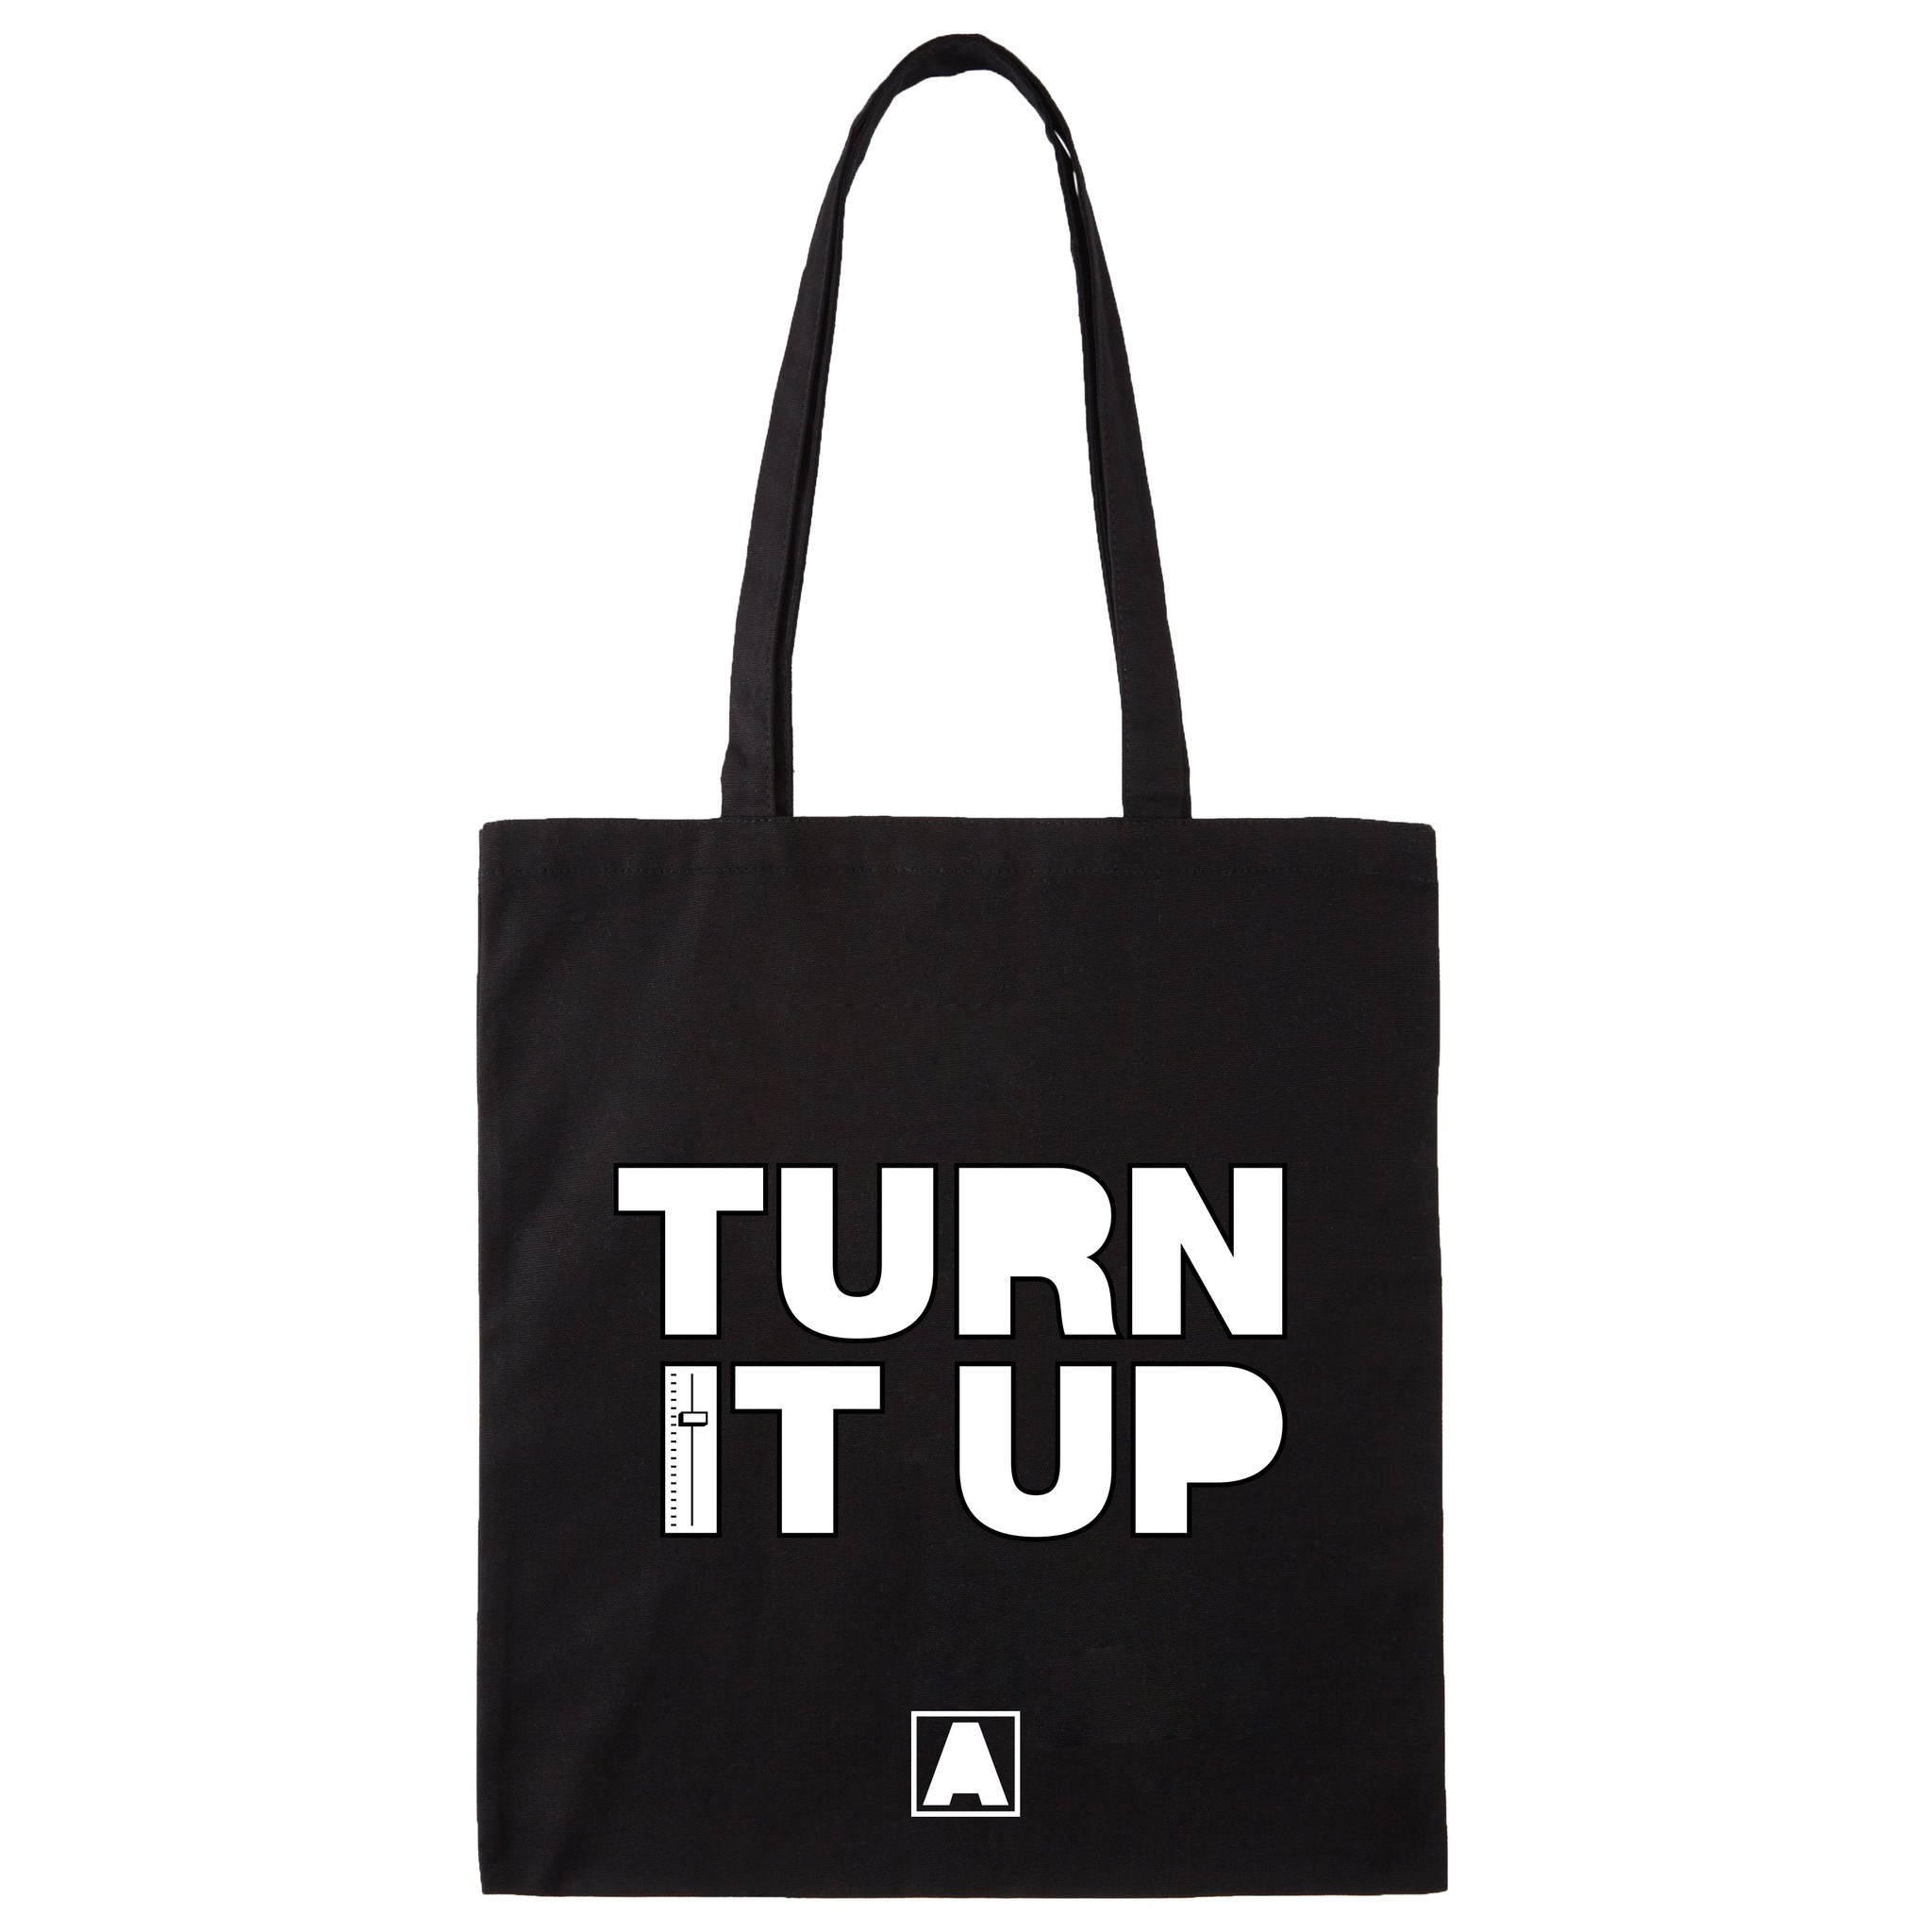 Armin van Buuren Armin van Buuren – Turn It Up totebag